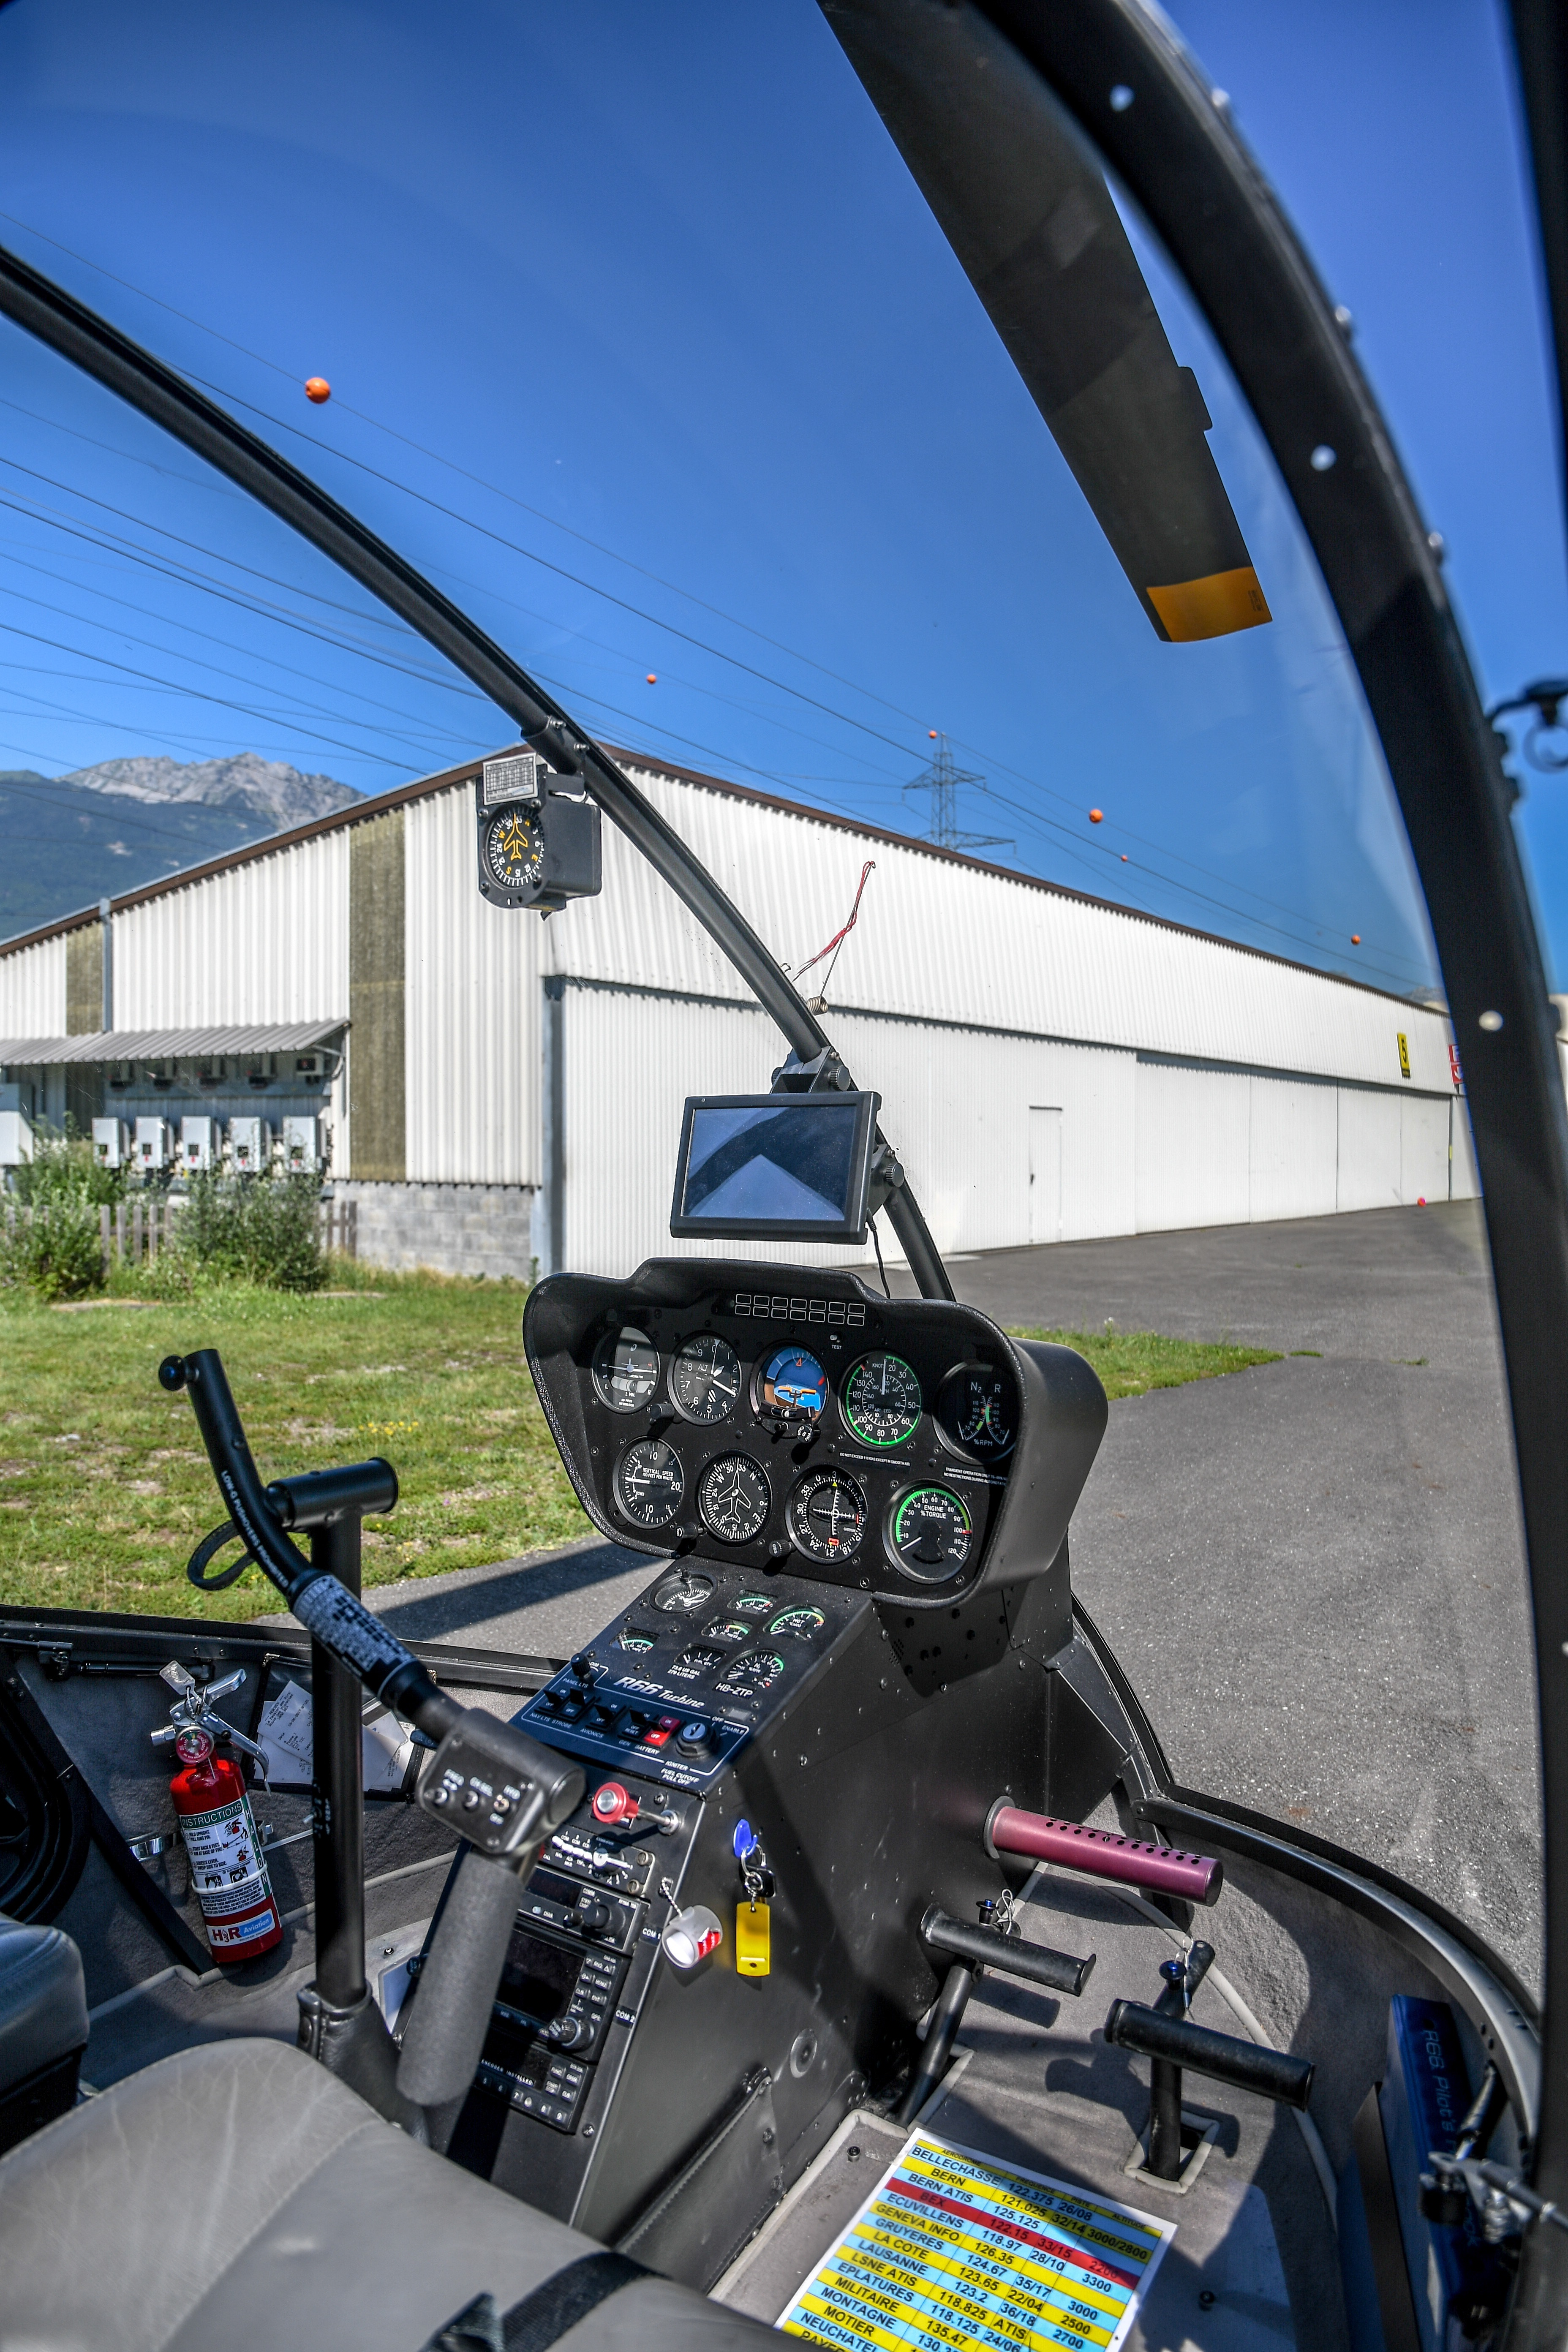 10th Open House day at the aerodrome - Bex - Uster Agenda